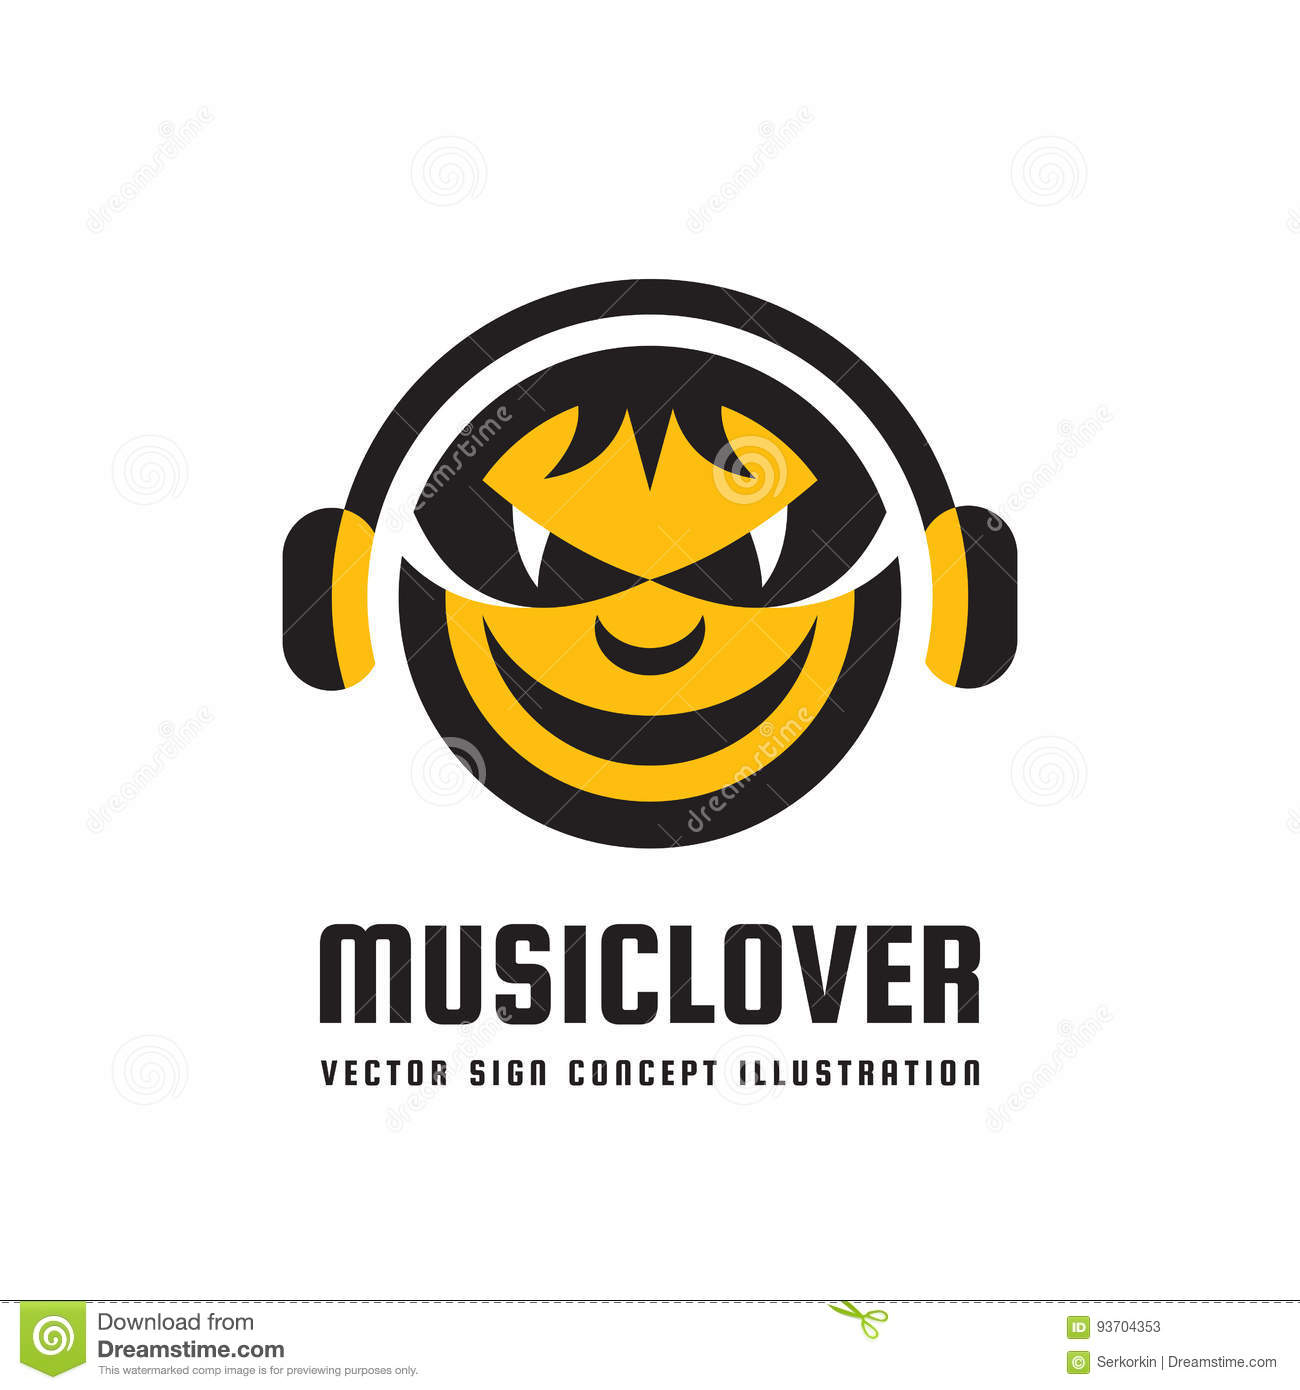 Mp3 Audio Music Lover Vector Logo Concept Illustration In Flat Style